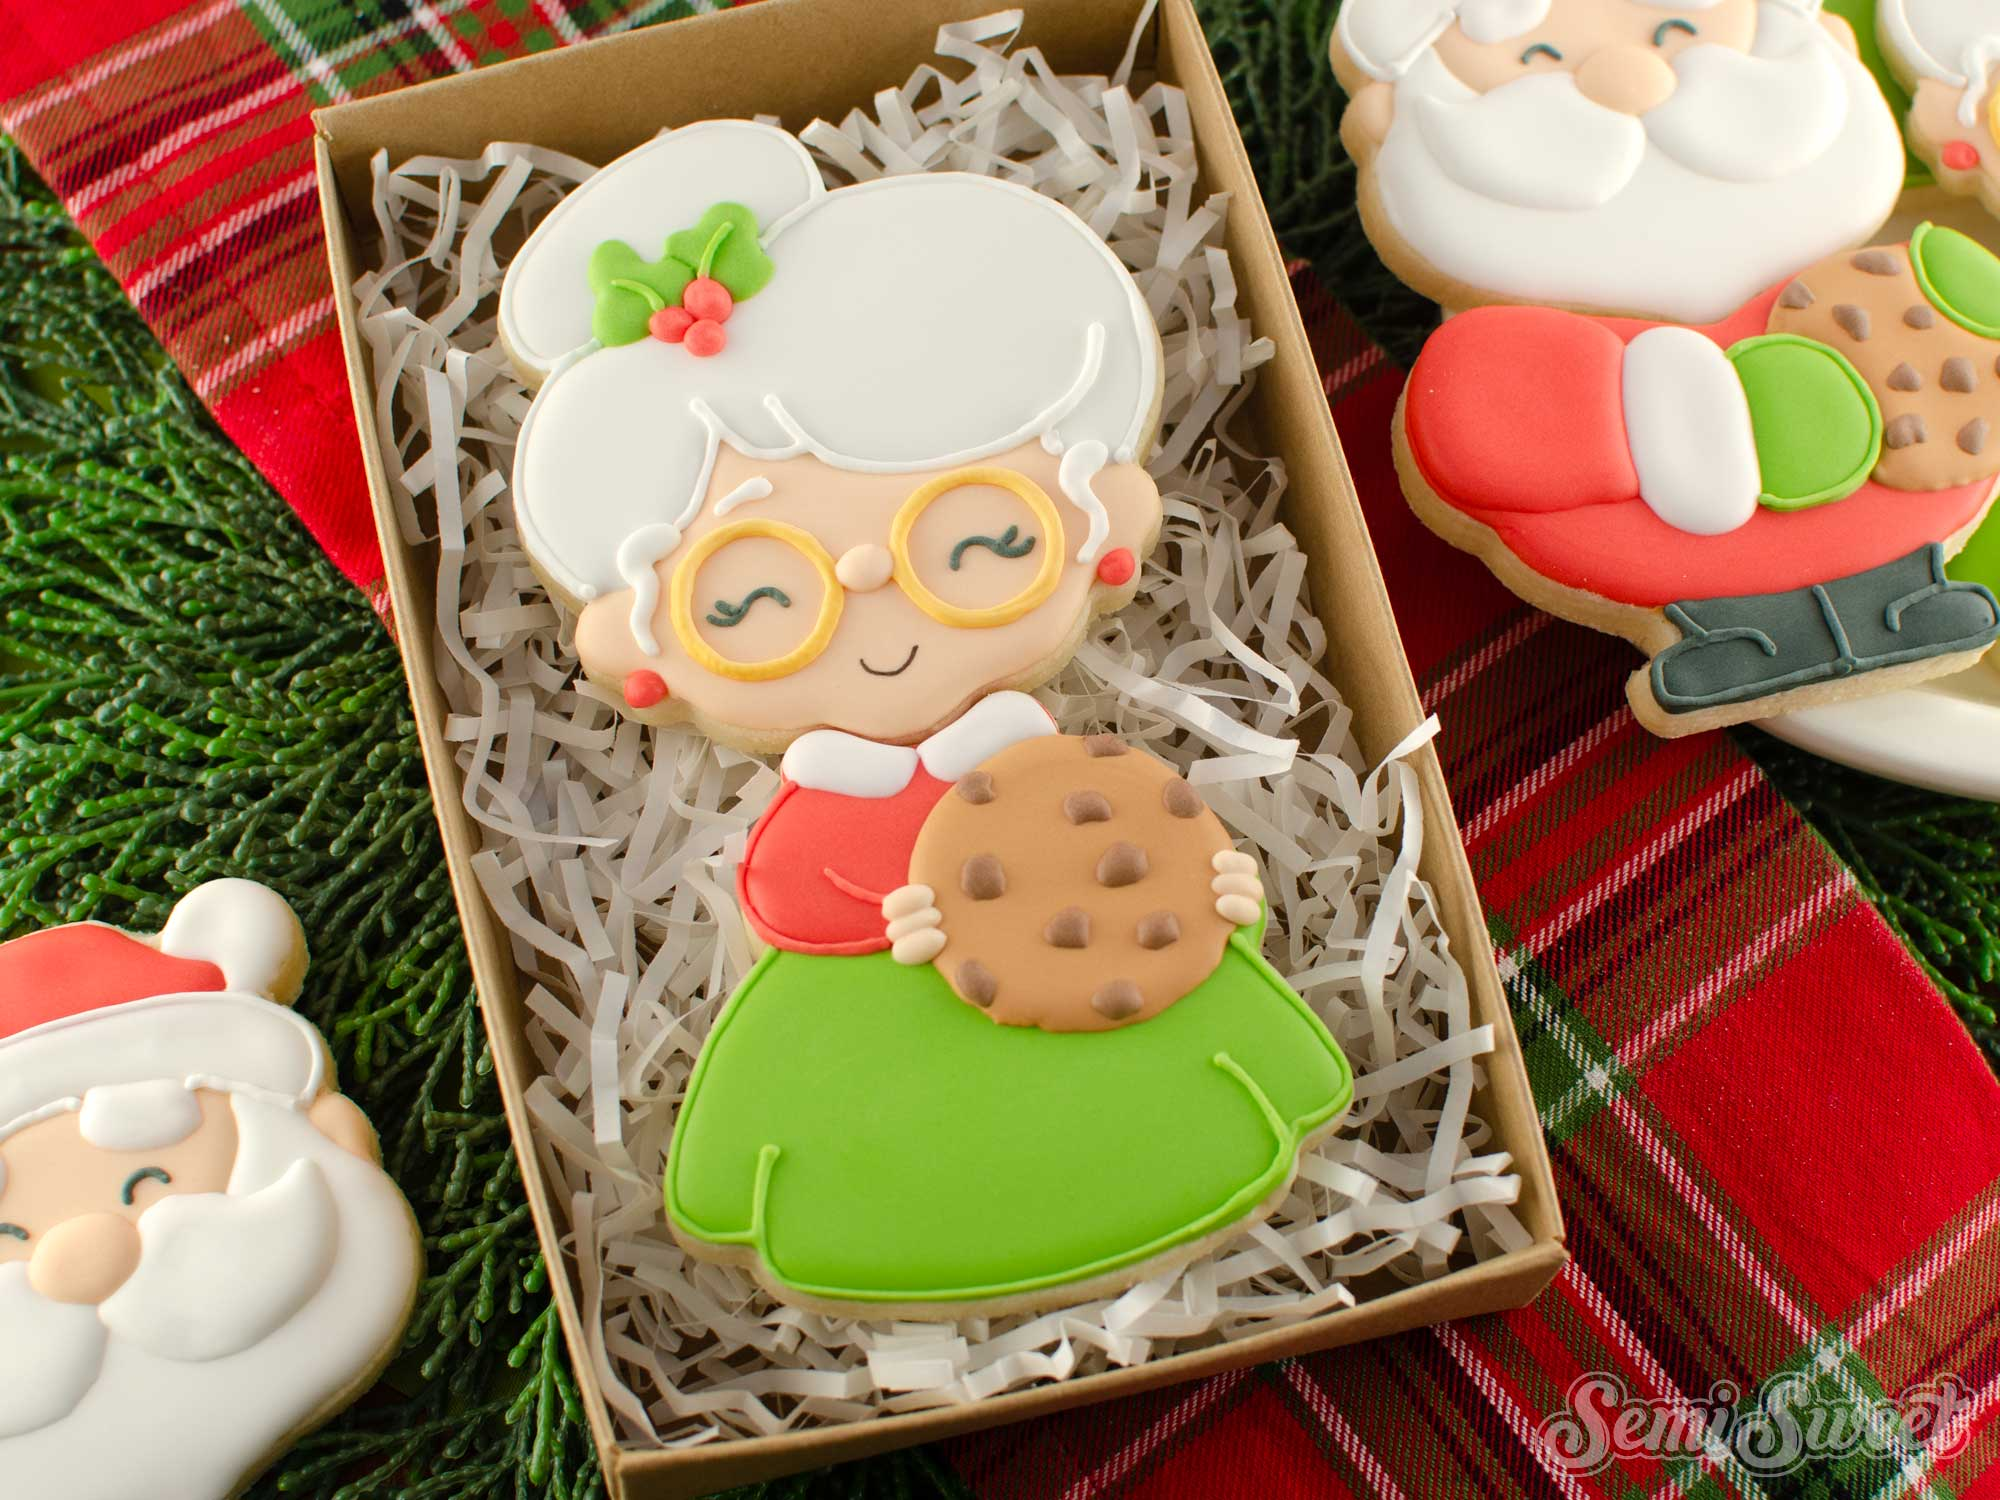 How to Make a Mrs. Claus Cookie Set